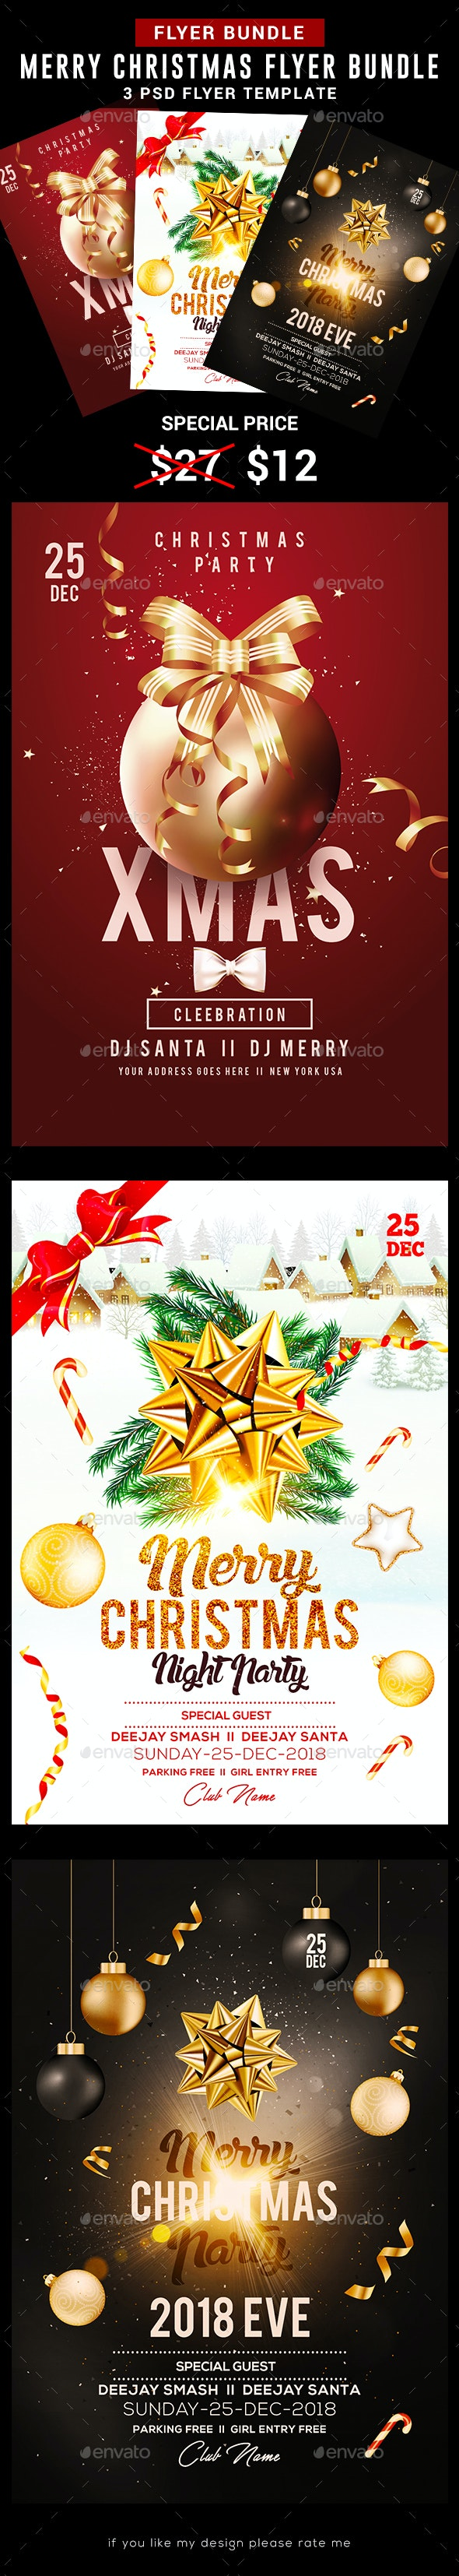 Christmas Flyer Bundle Templates - Holidays Events